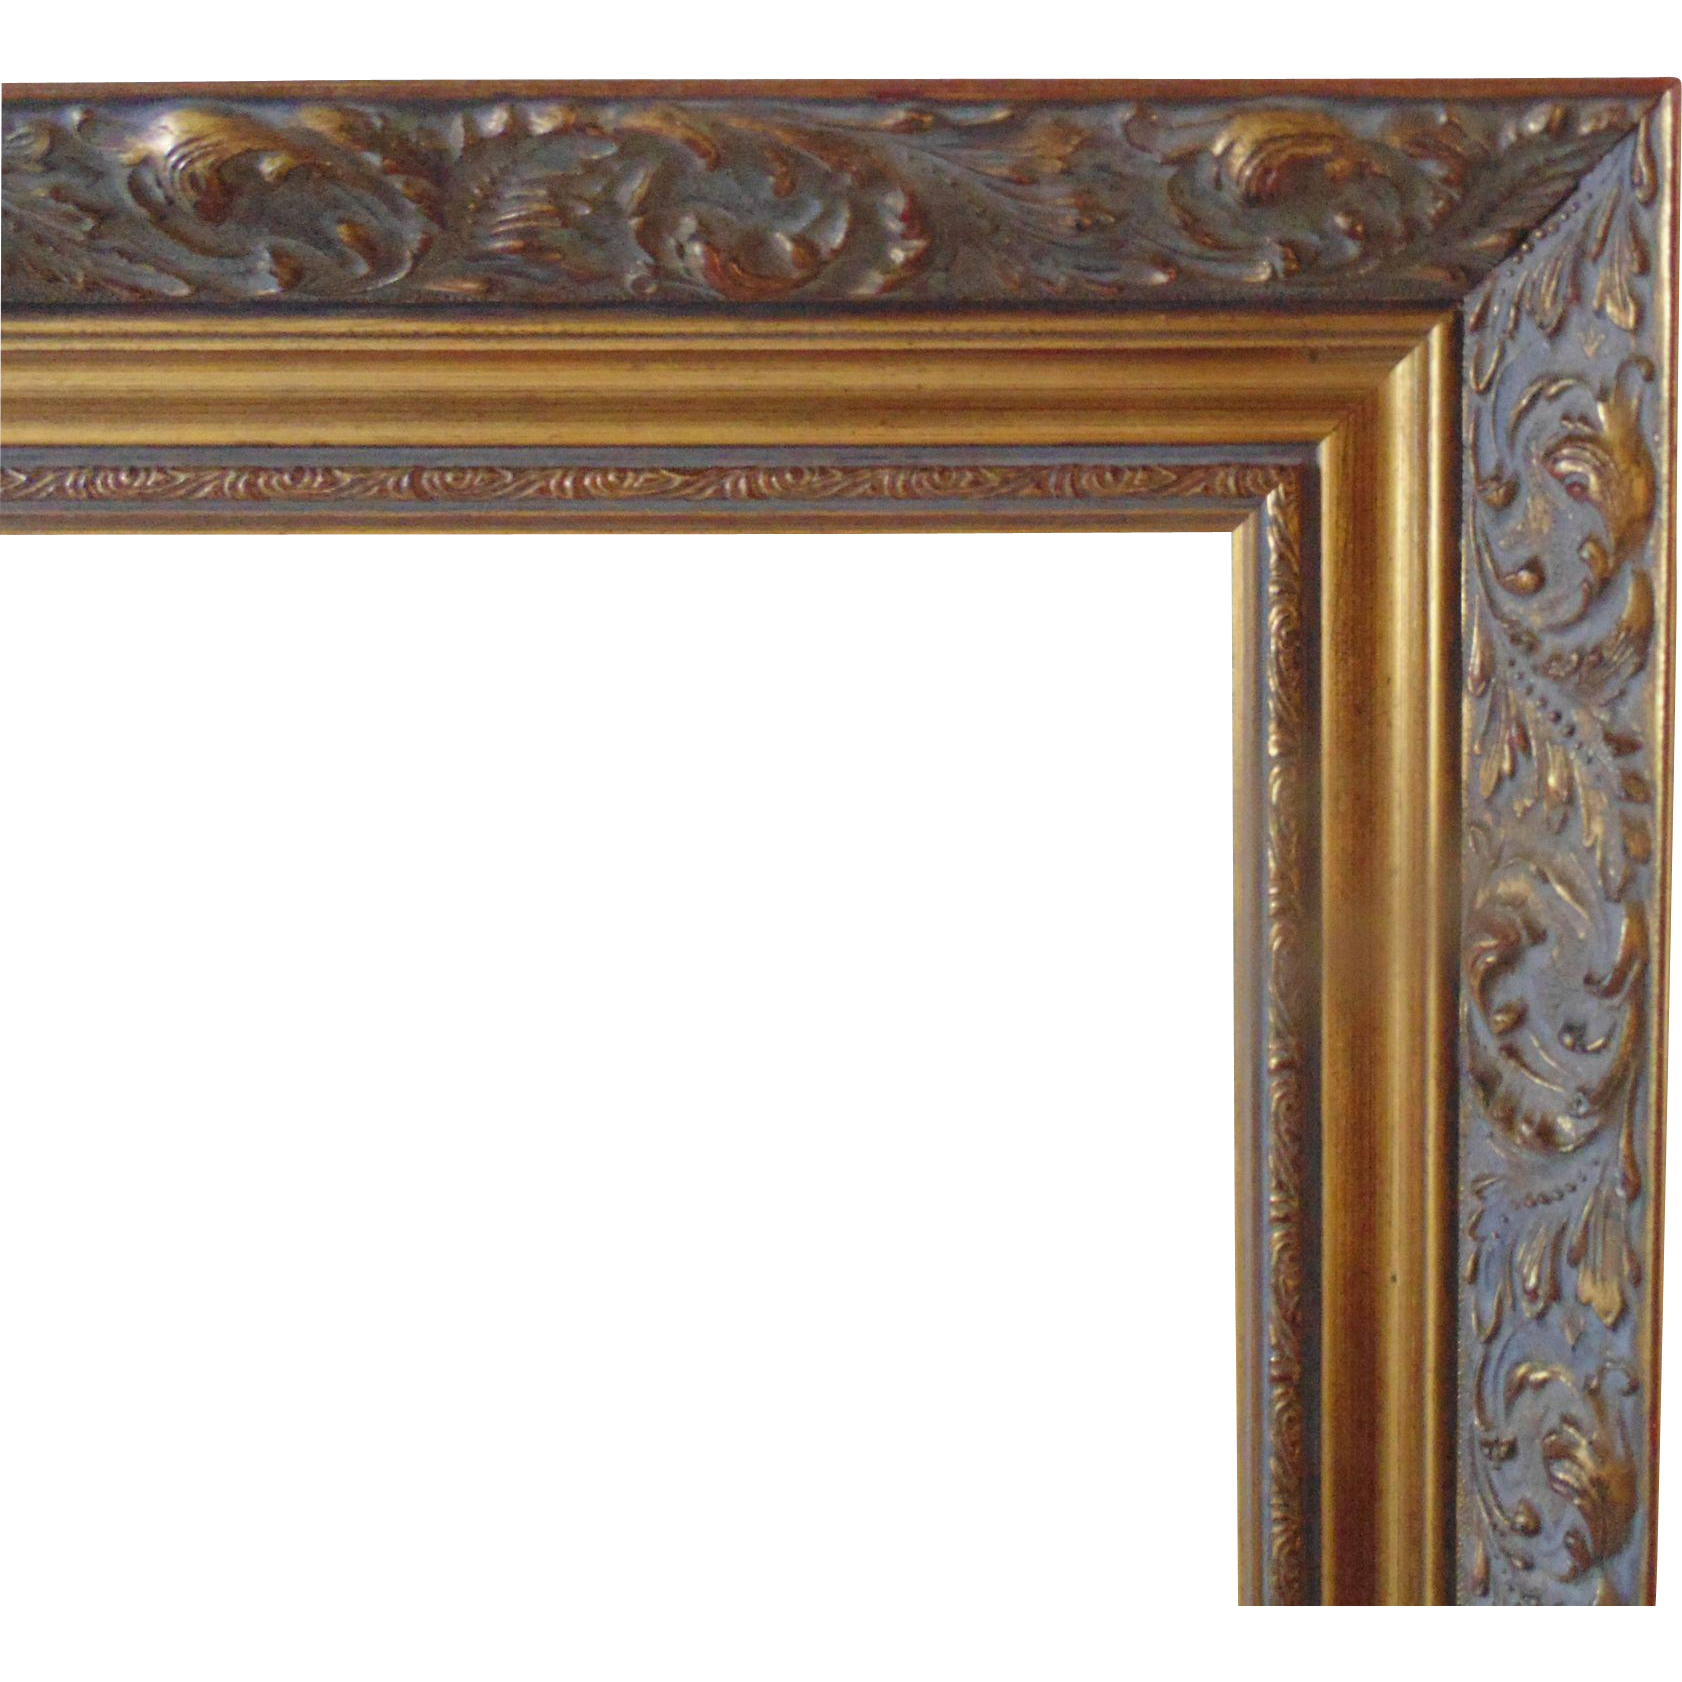 Large Vintage Gold Picture Wood Frame W Rococo Swirls For Painting Or Print Gilt Wood Frame Frame Picture Frame Art